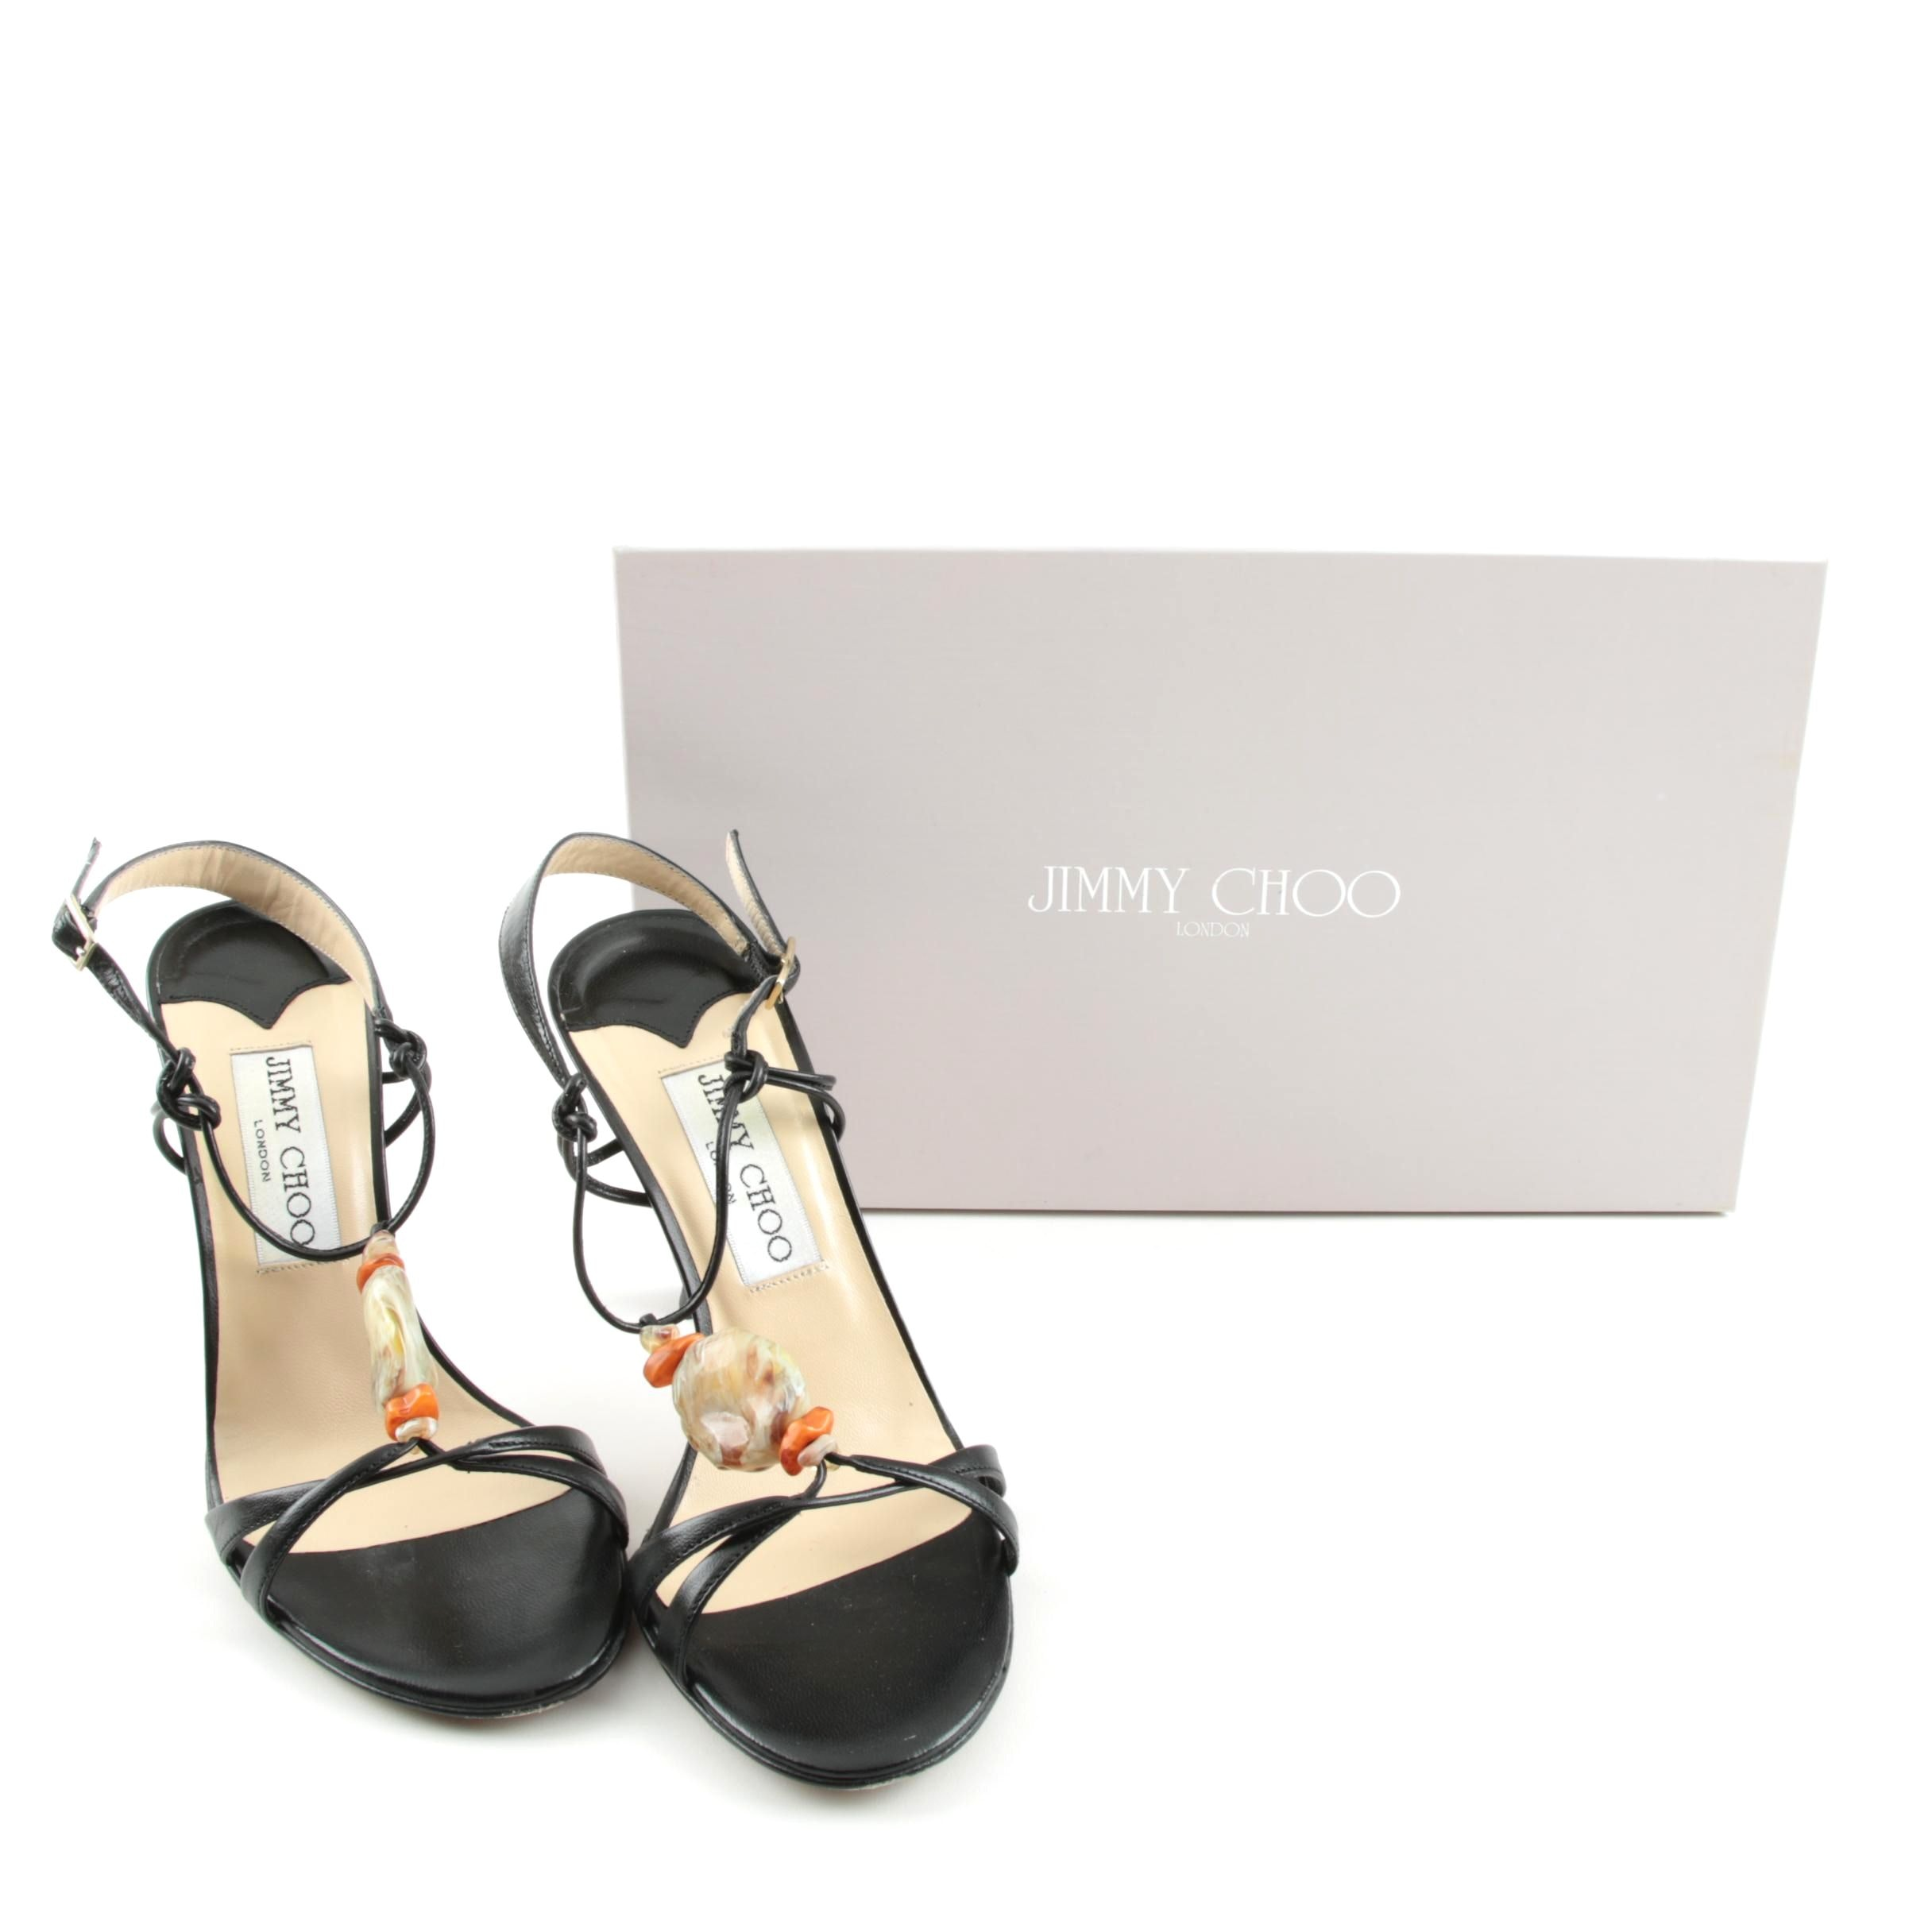 Jimmy Choo Black Leather and Poured Glass Stone Strappy Sandals